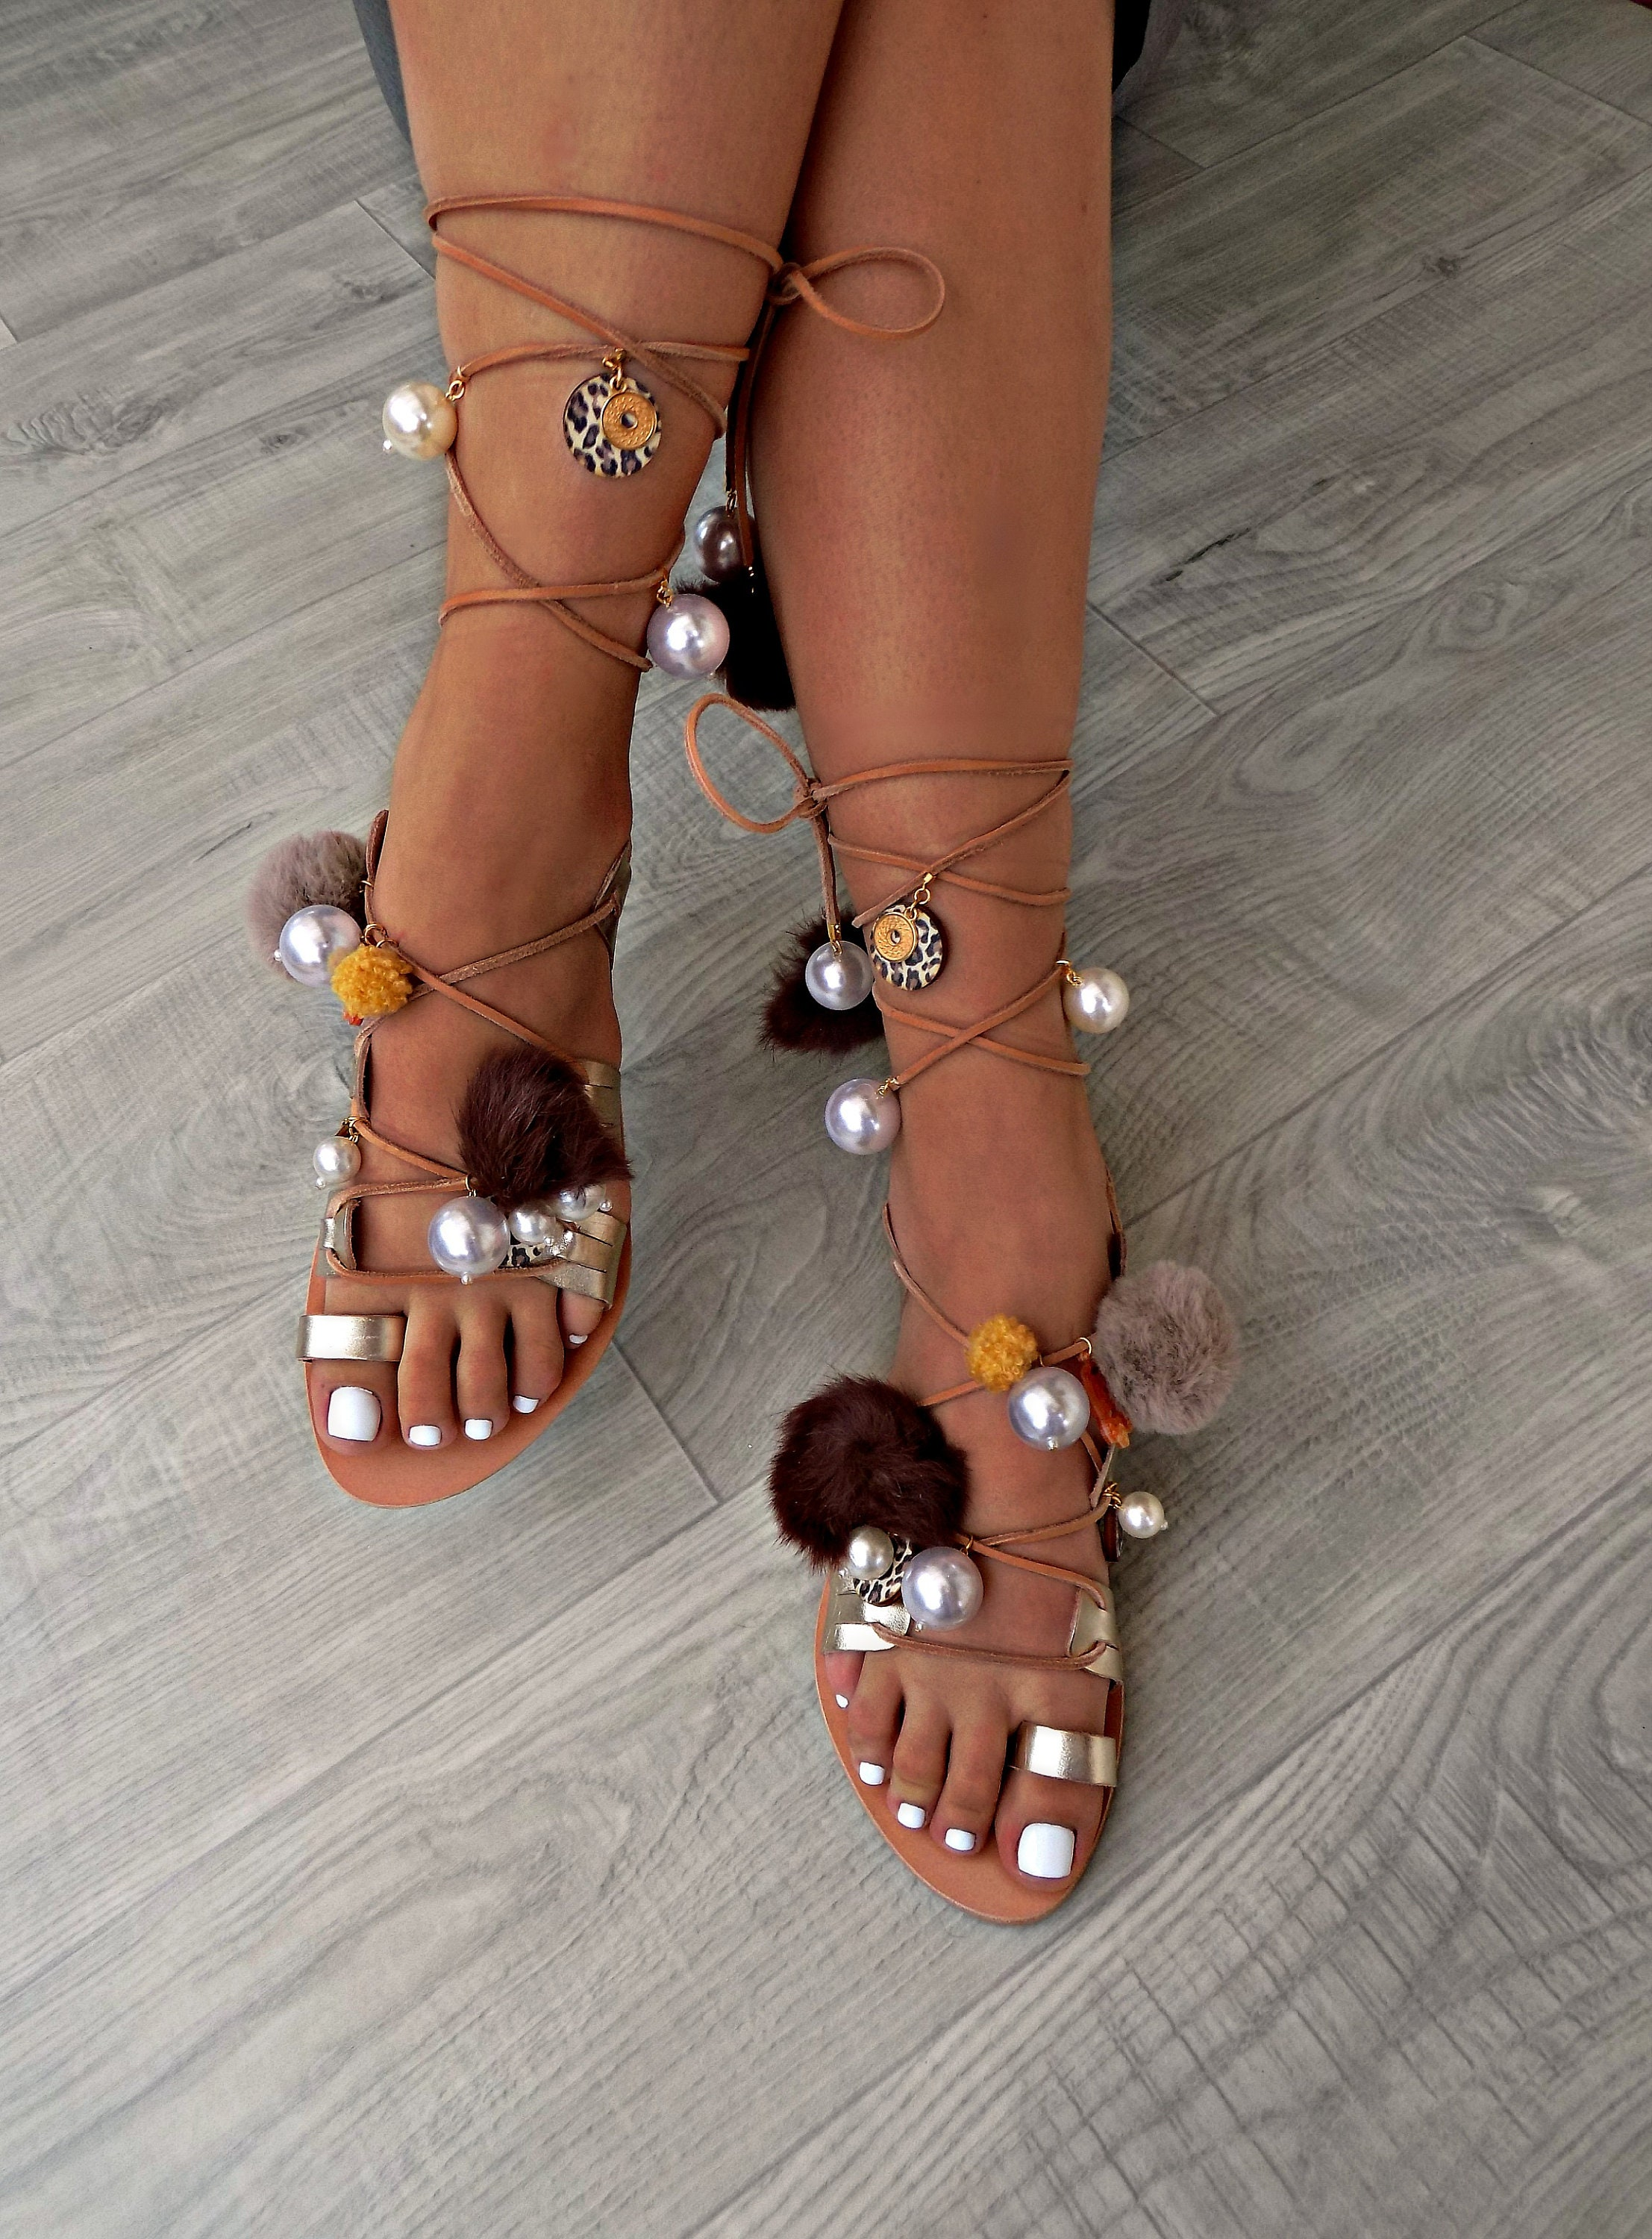 984b79627f8e4 Tie Up Gladiator Sandals, Pom Pom sandals with pearls, Leather lace ...